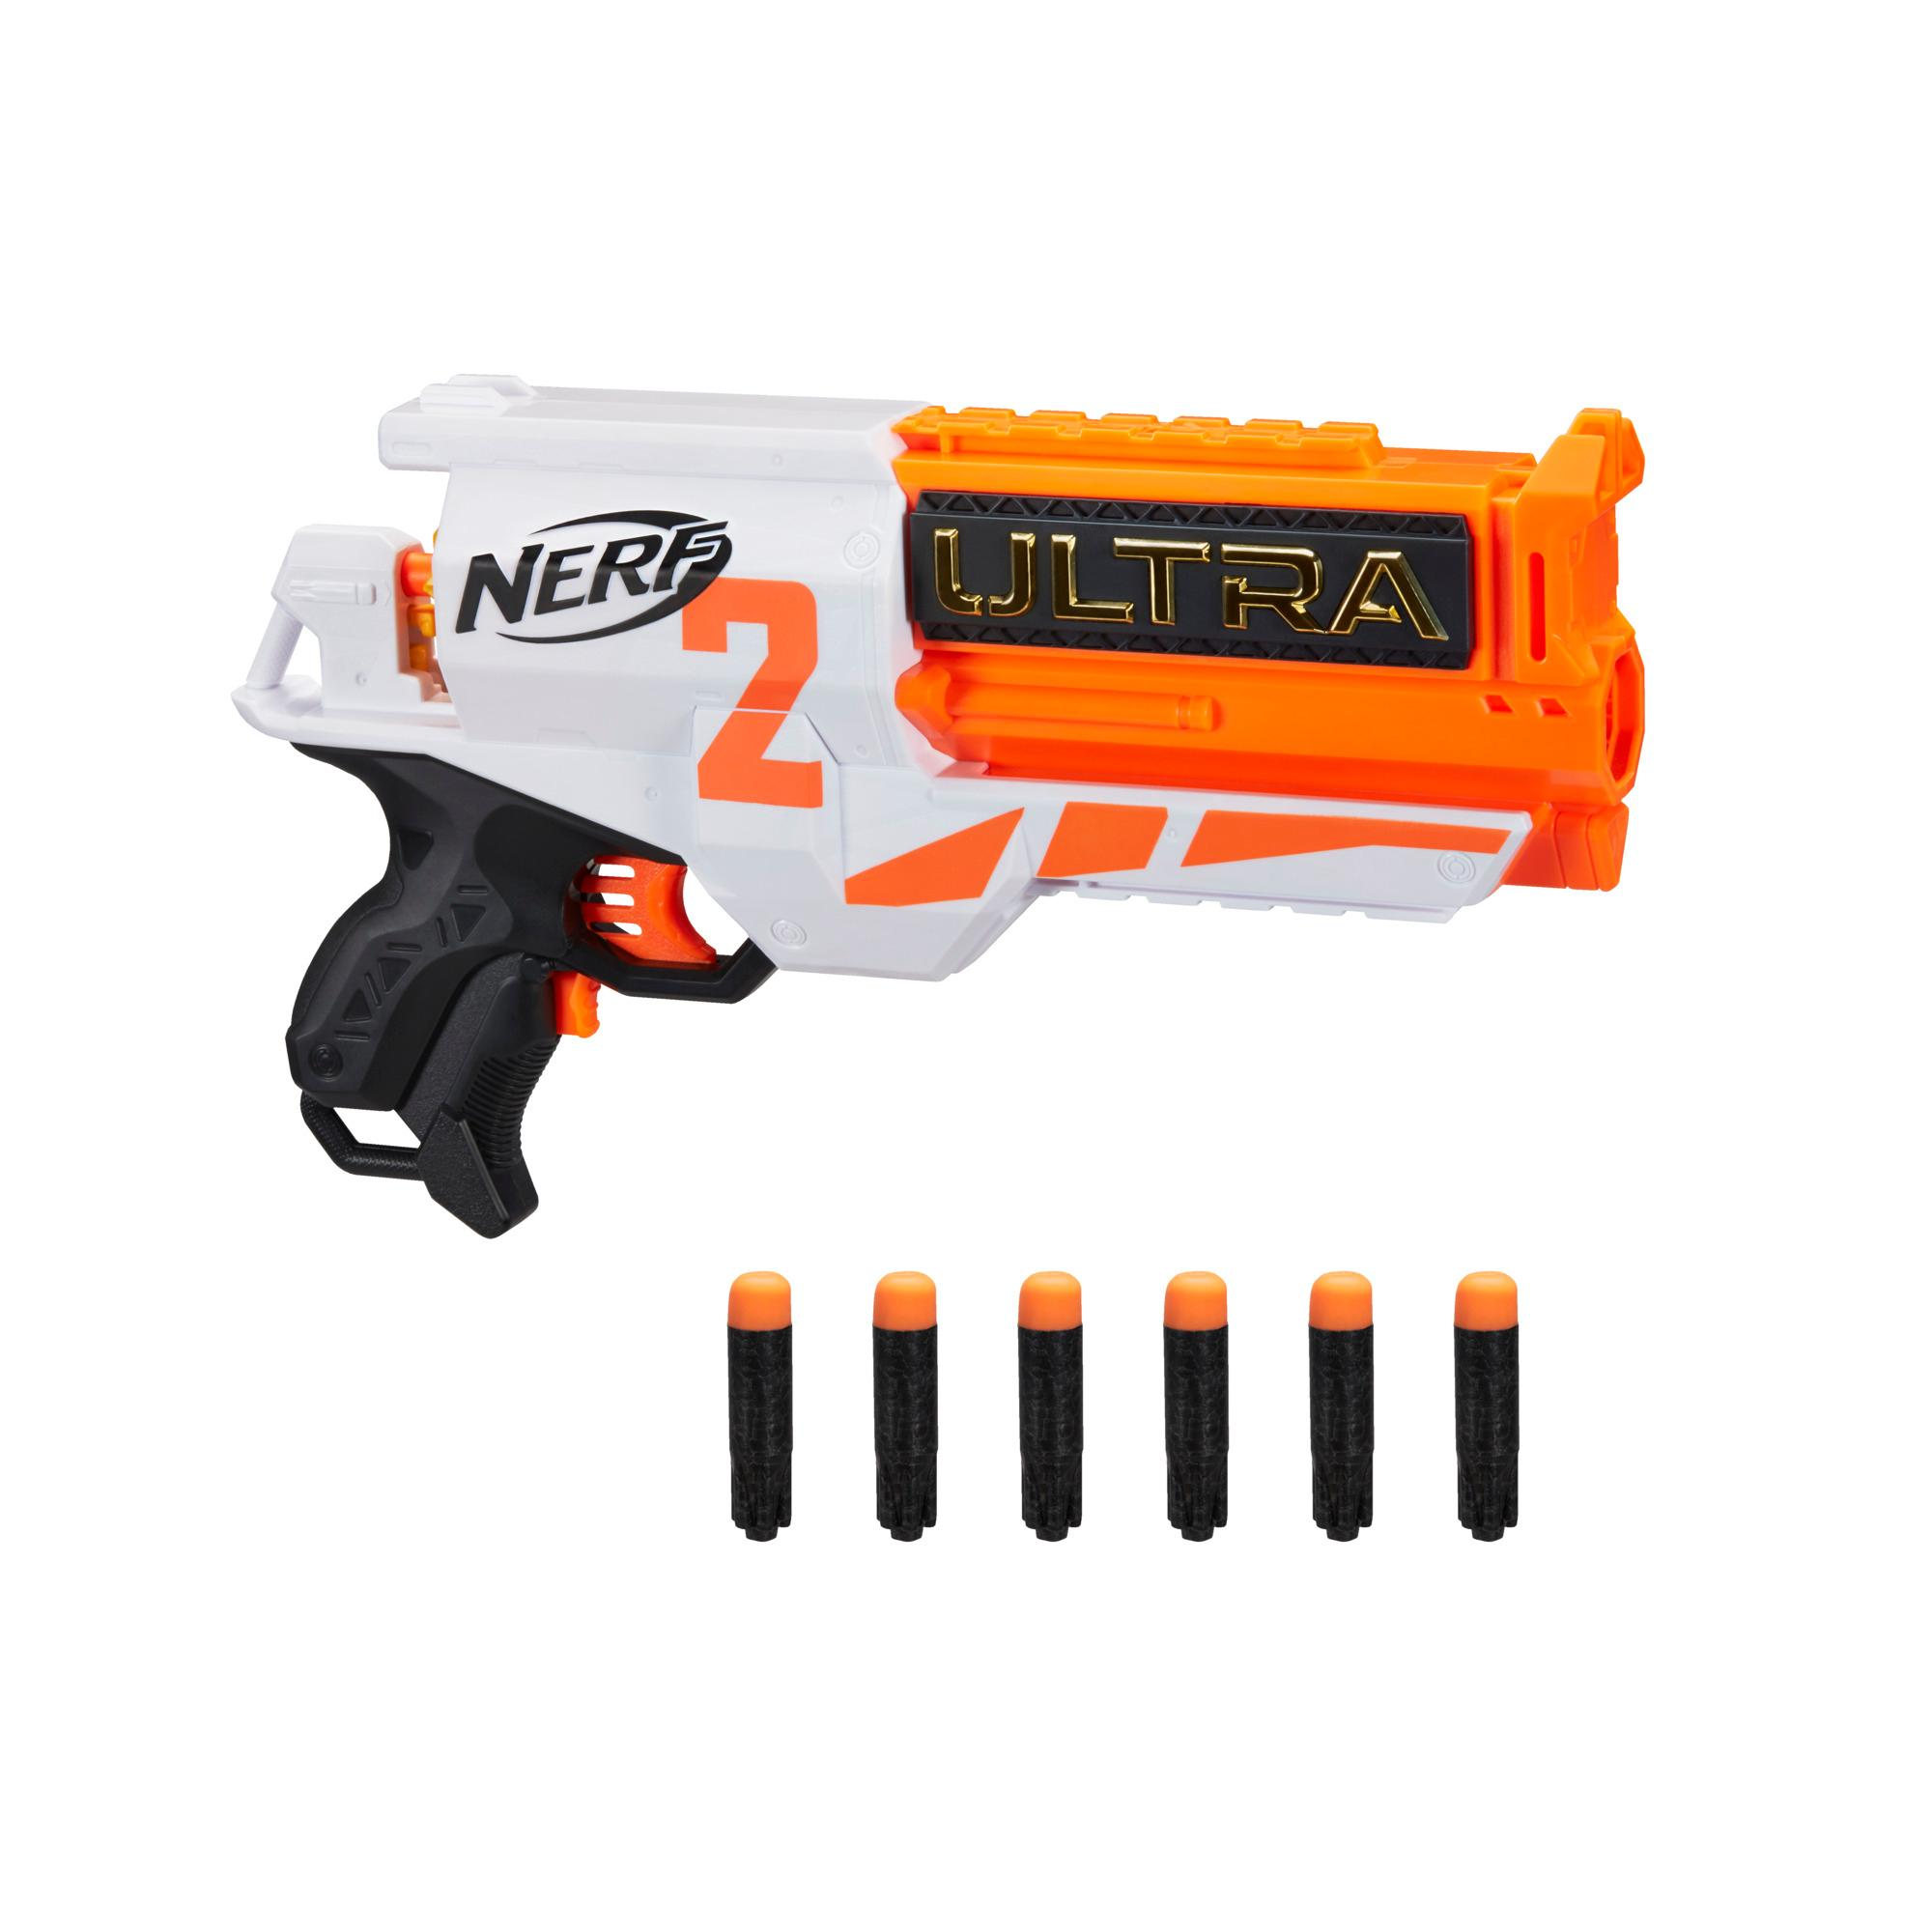 Nerf Ultra Two-blaster